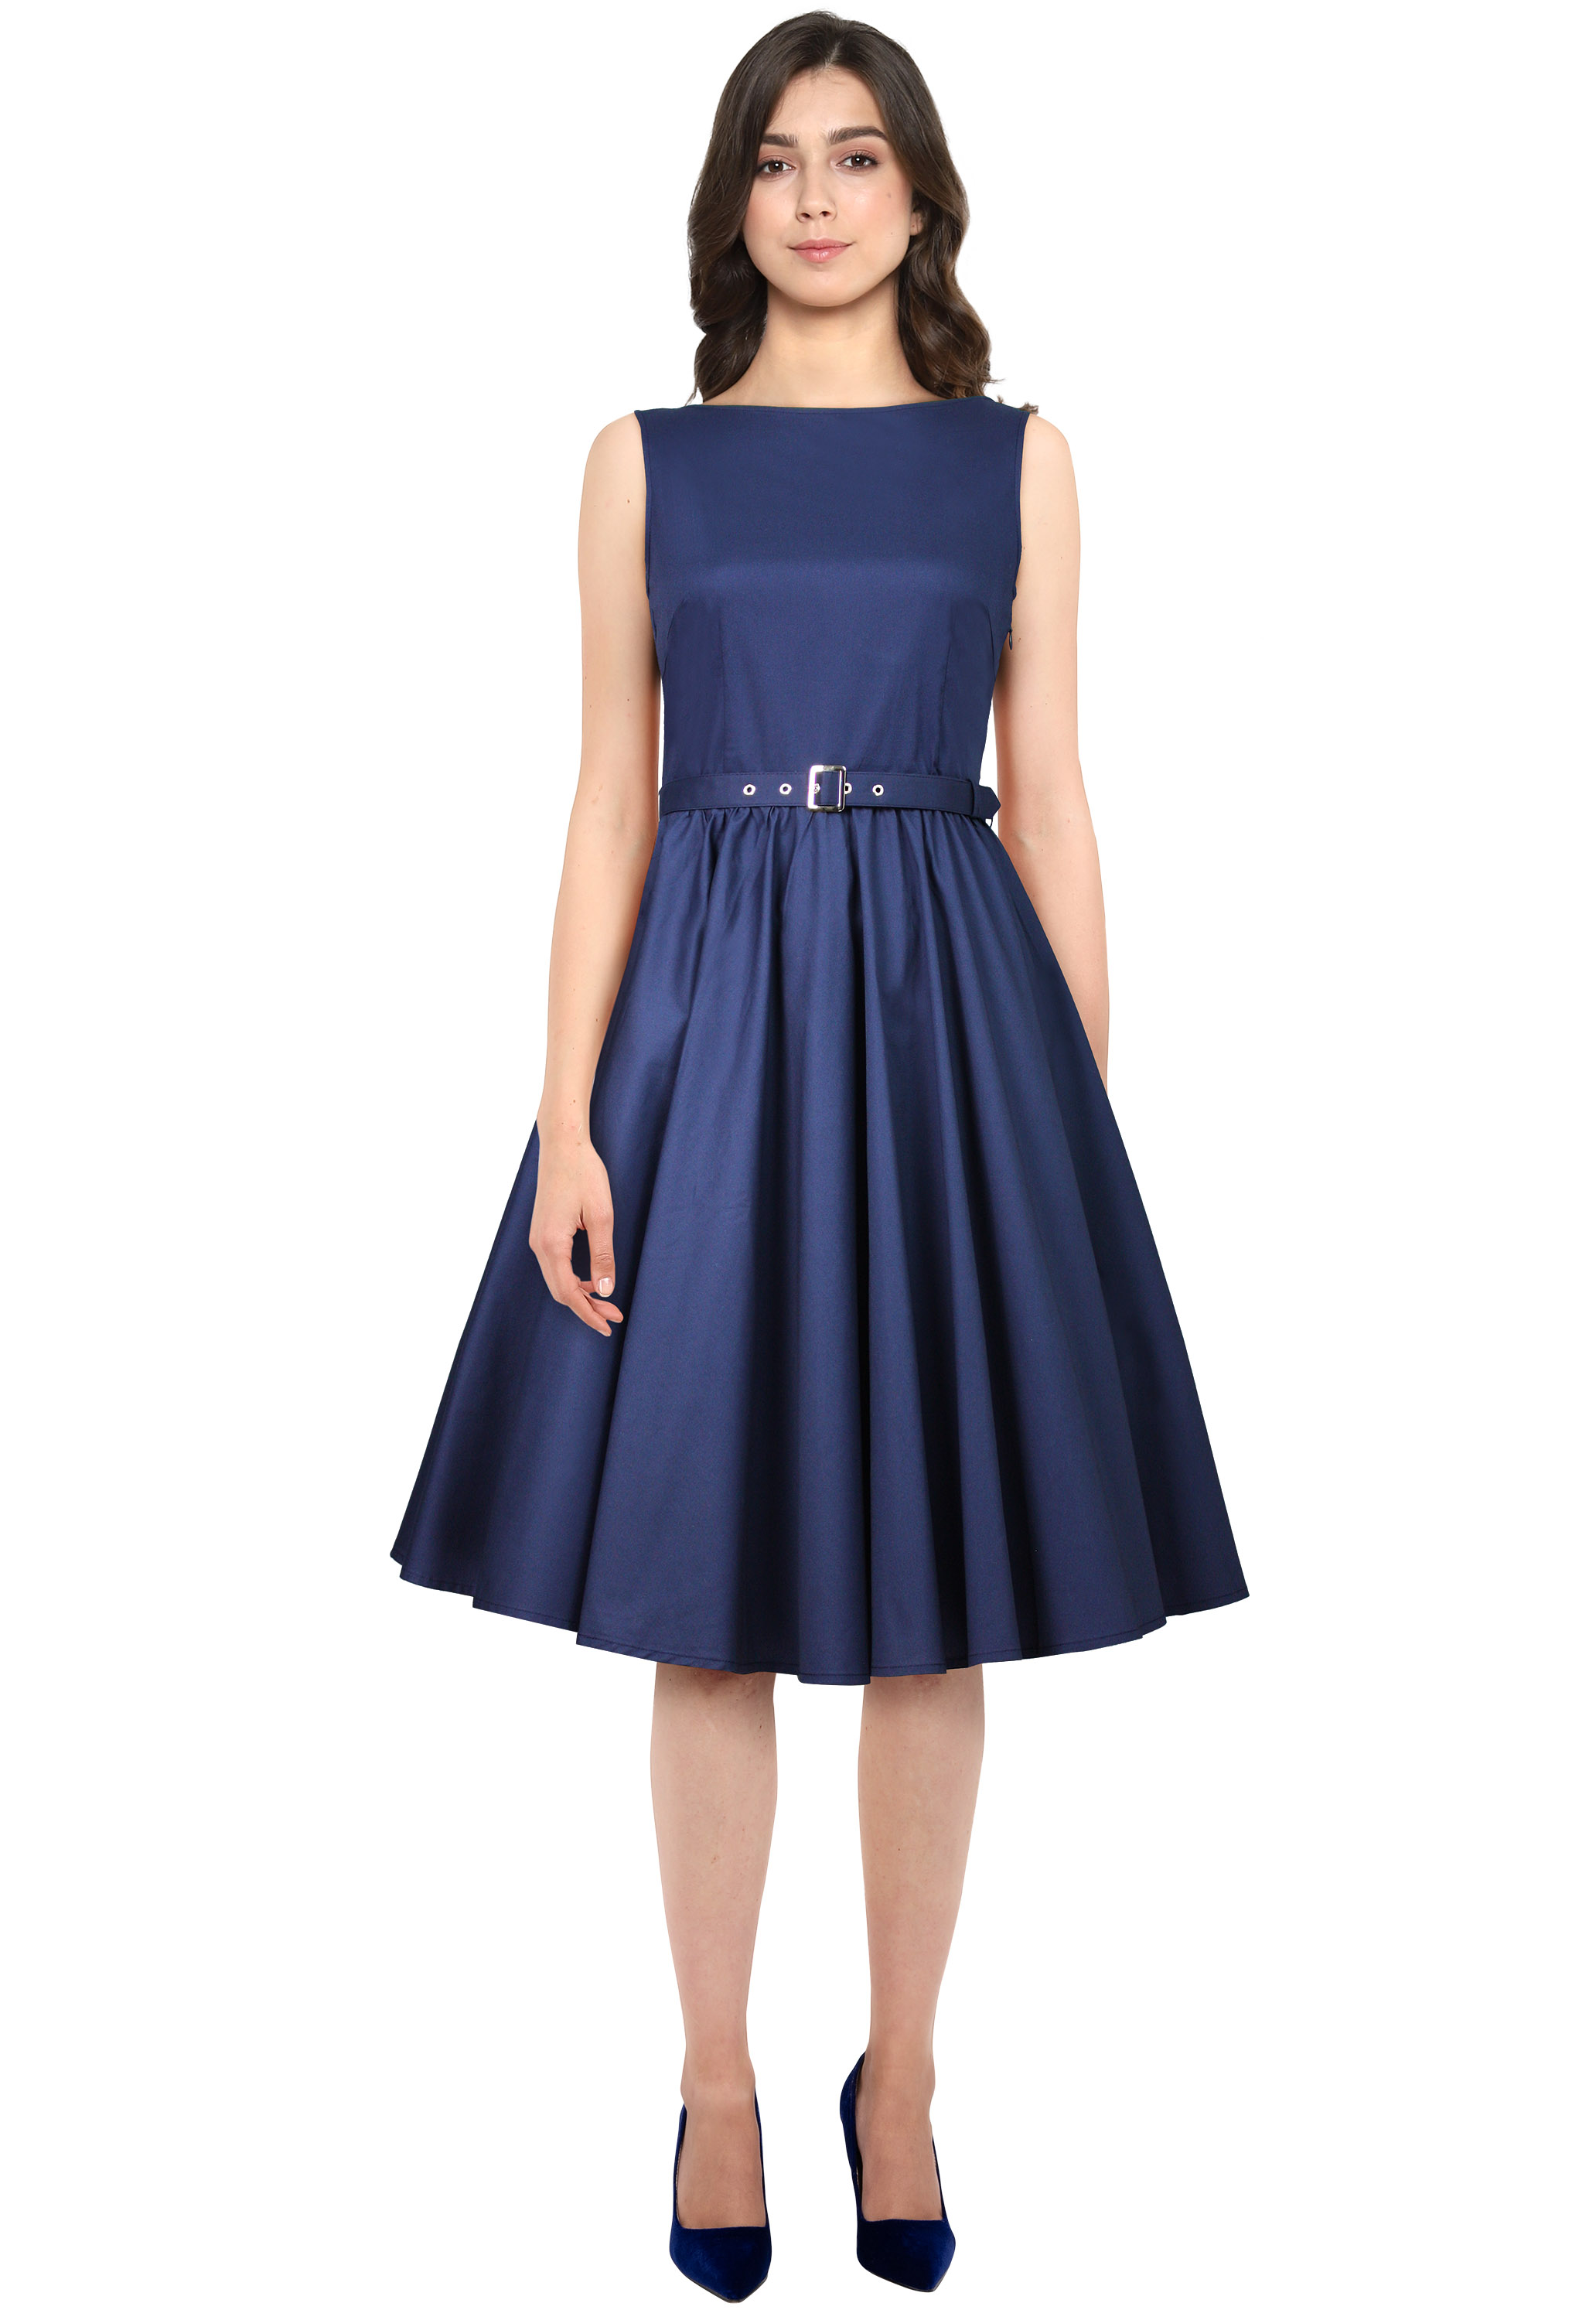 Images for How to accessorize a navy blue dress for a wedding